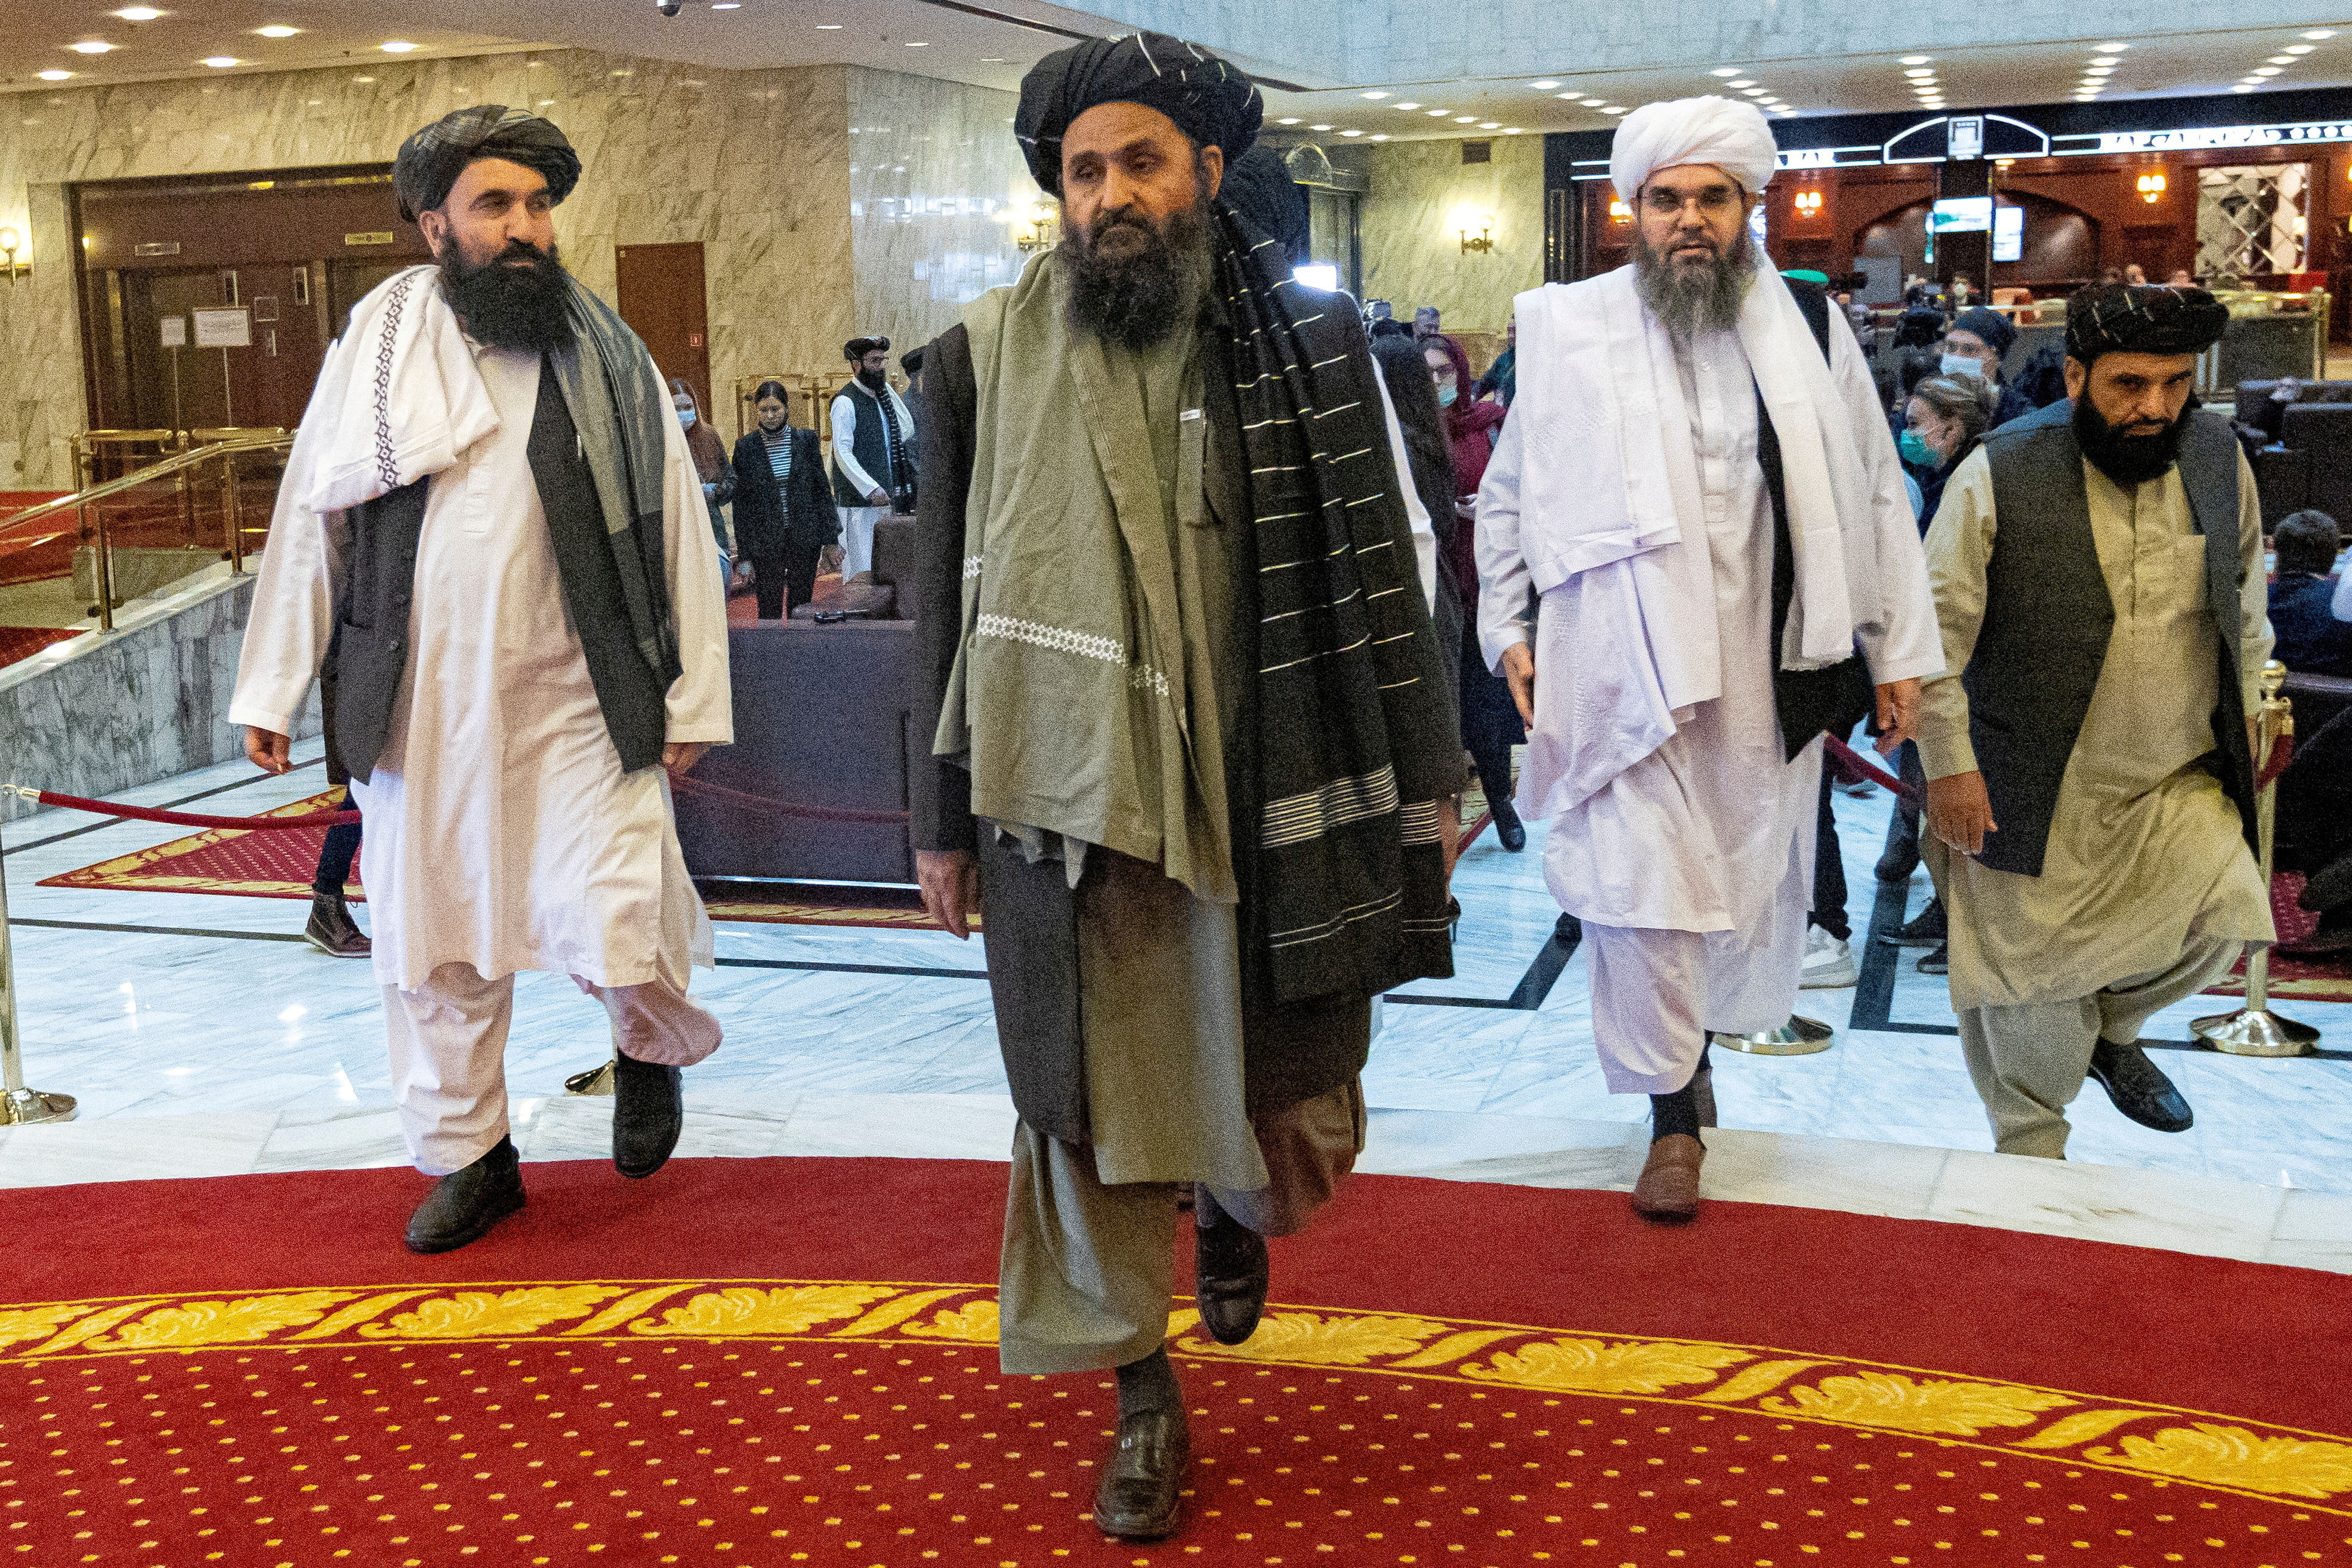 Mullah Abdul Ghani Baradar, the Taliban's deputy leader and negotiator, and other delegation members attend the Afghan peace conference in Moscow, Russia March 18, 2021. Alexander Zemlianichenko/Pool via REUTERS/File Photo/File Photo